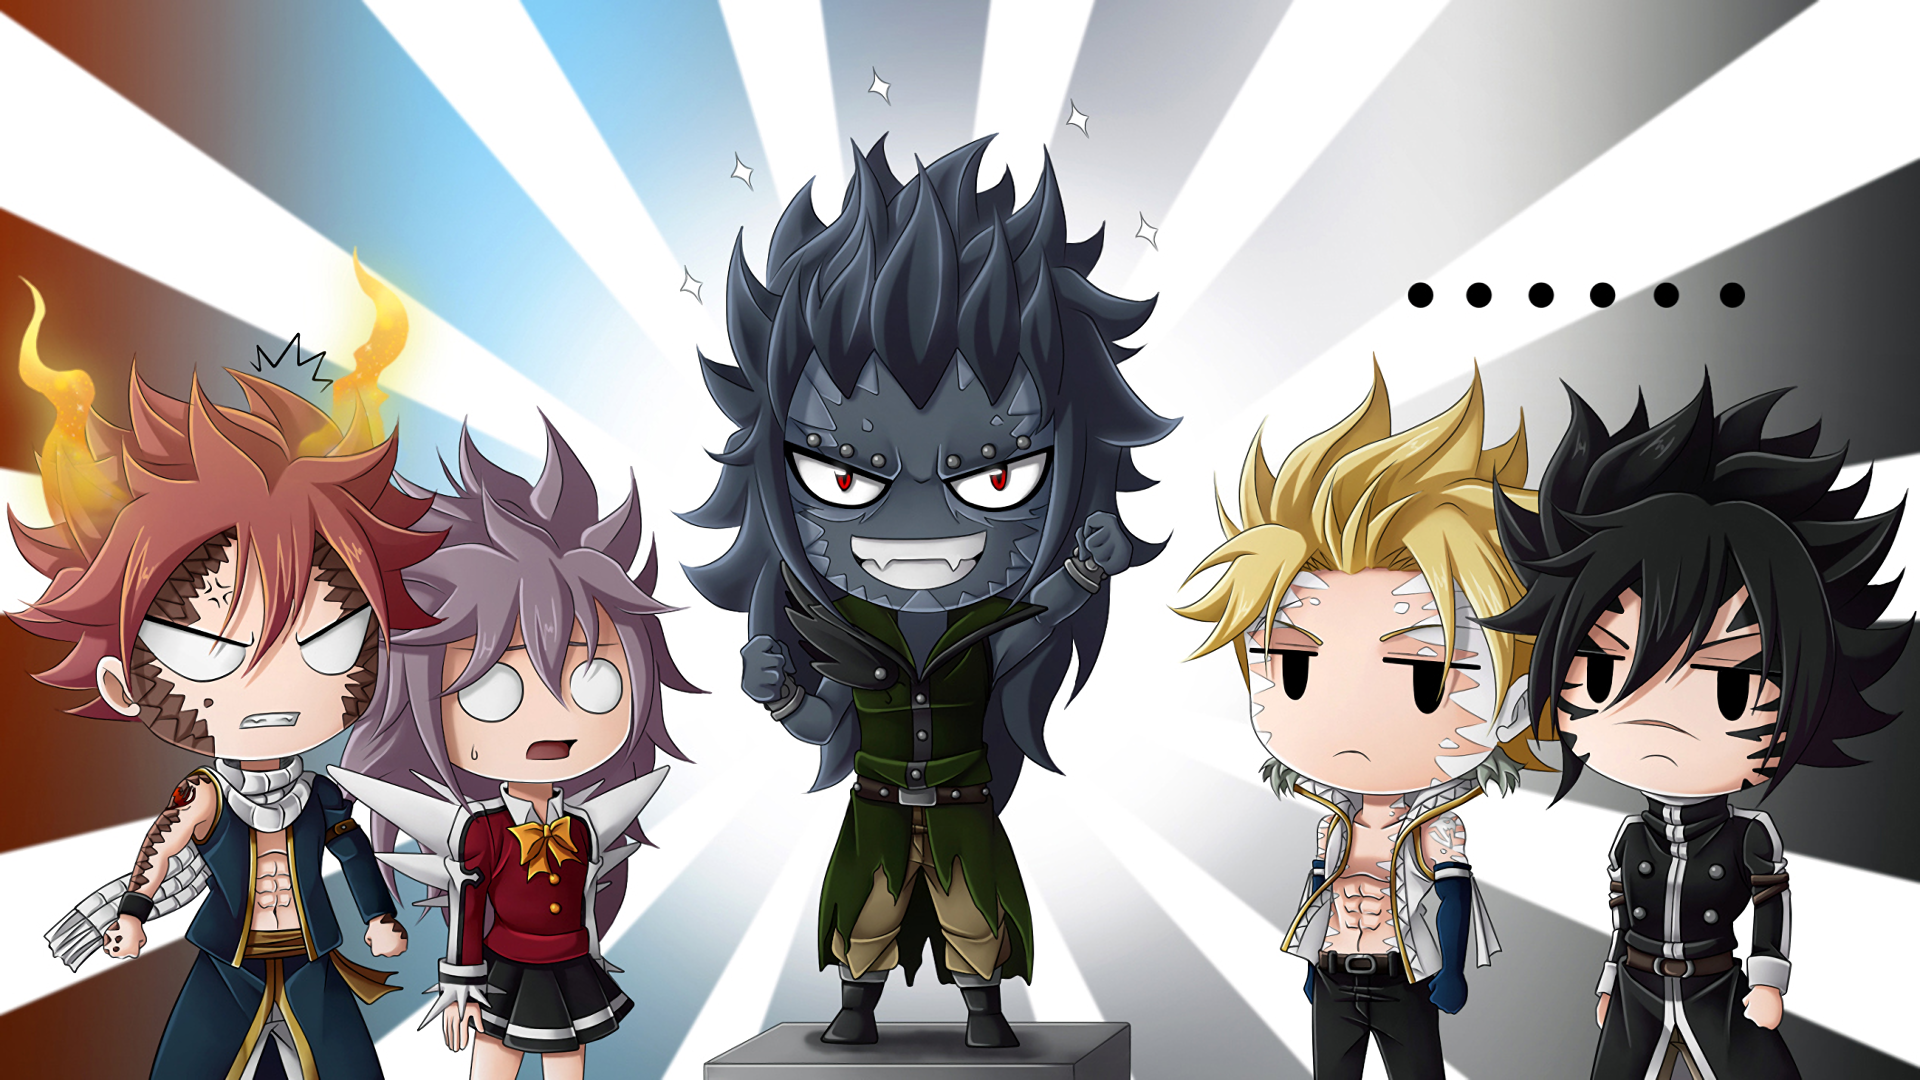 Pin By Kathy I Love Cosplay On Manga Cosplay Anime Fairy Fairy Tail Dragon Force Fairy Tail Rogue